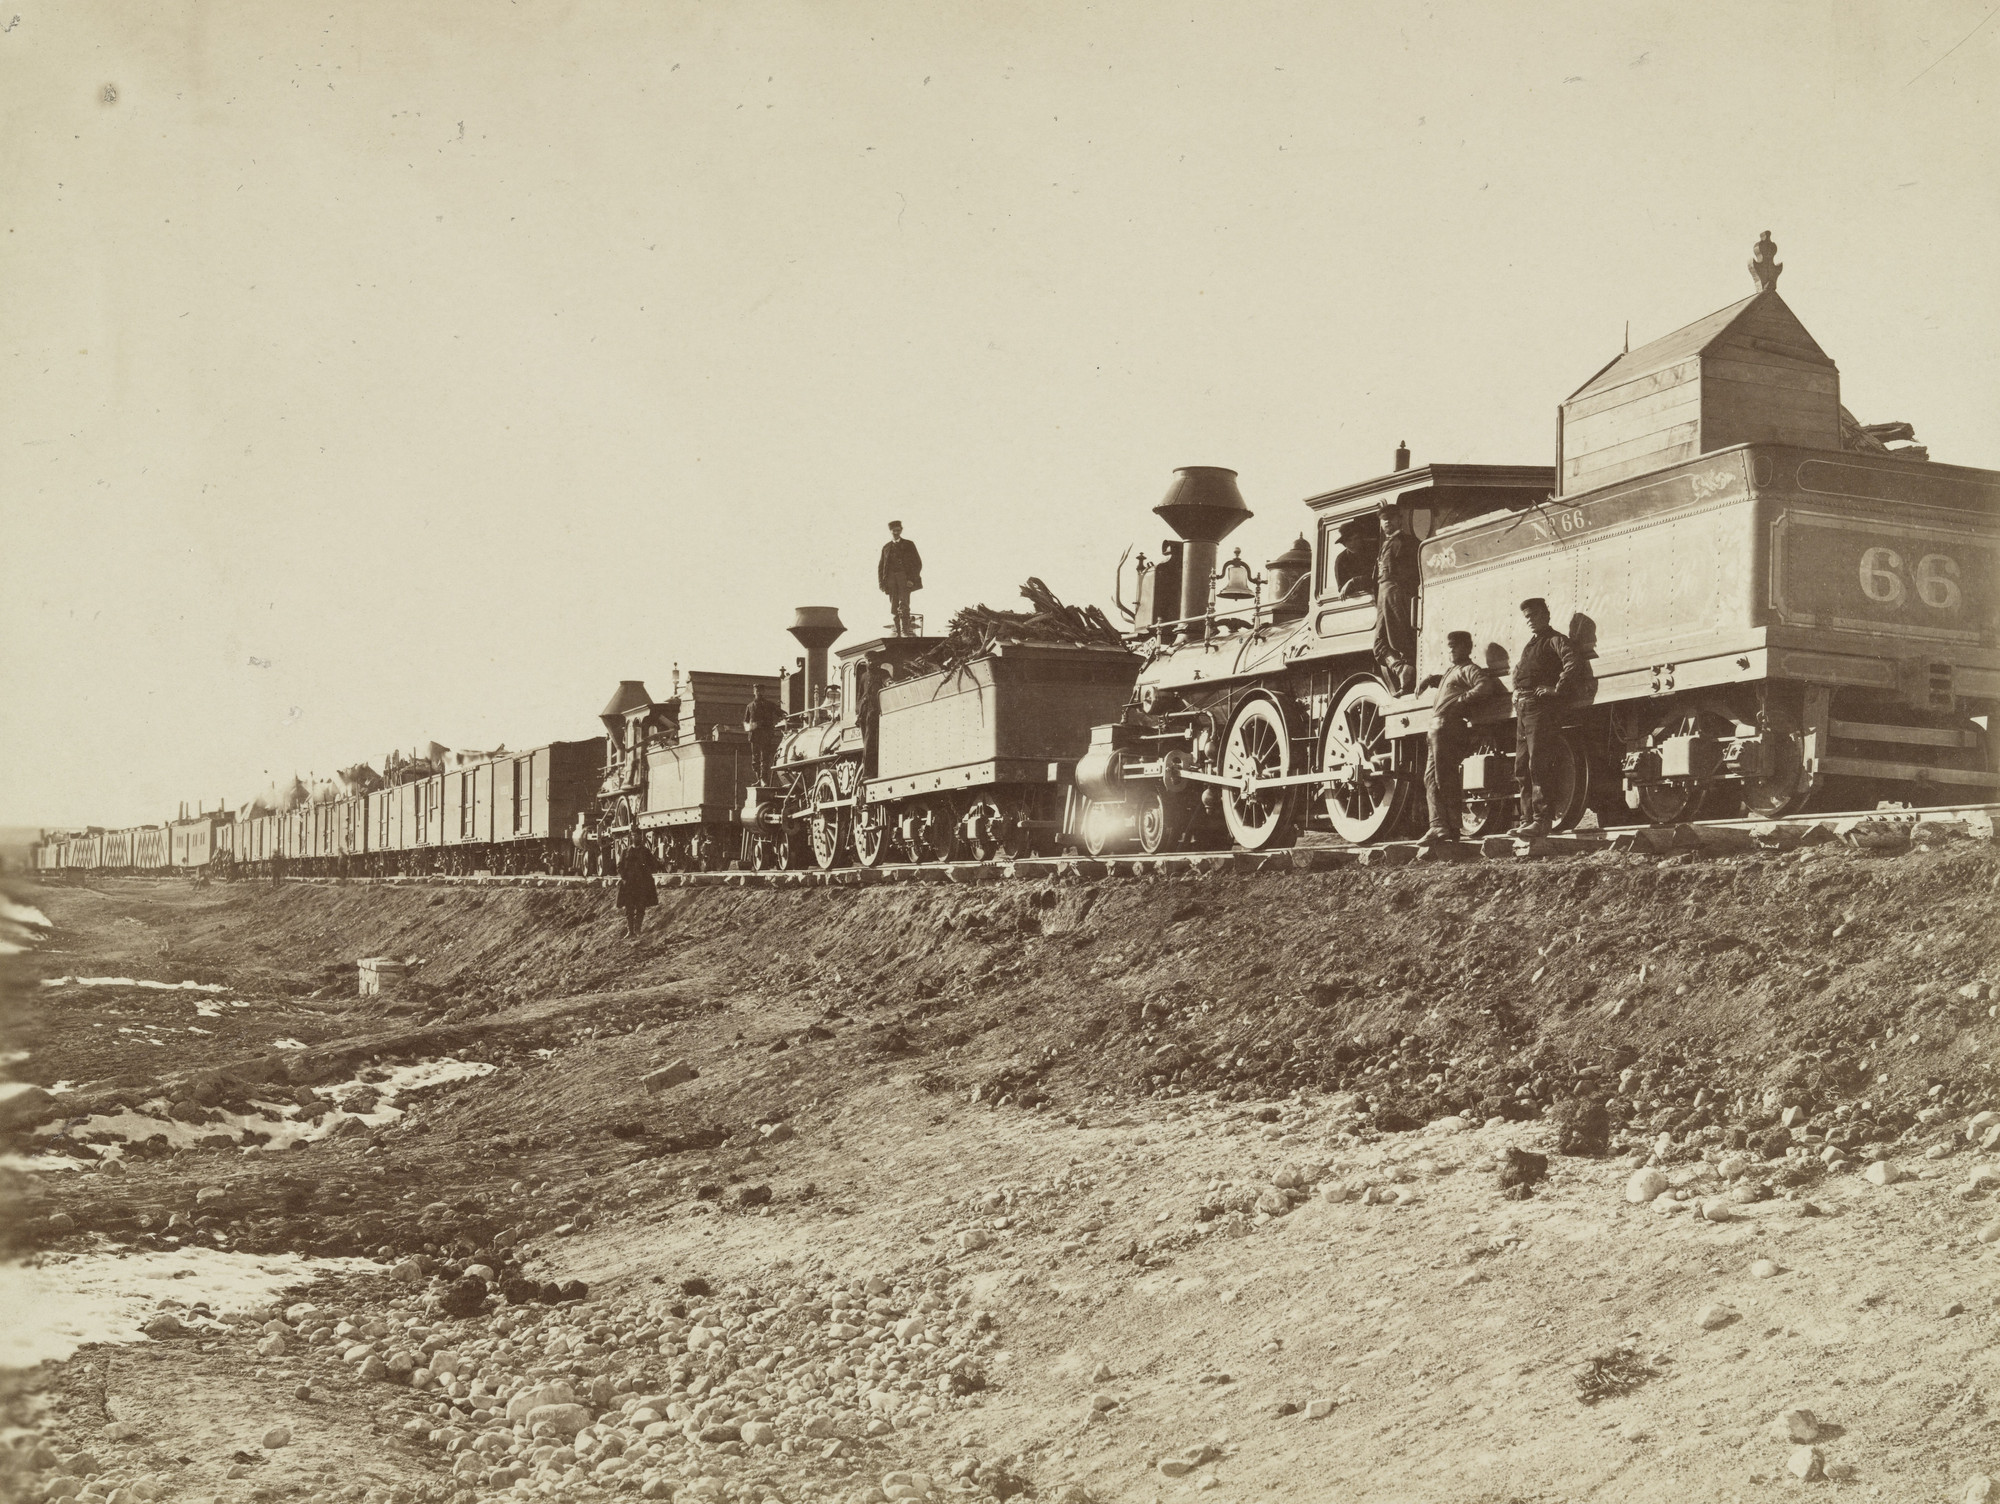 Andrew Joseph Russell. Construction Train, Bear River. 1868